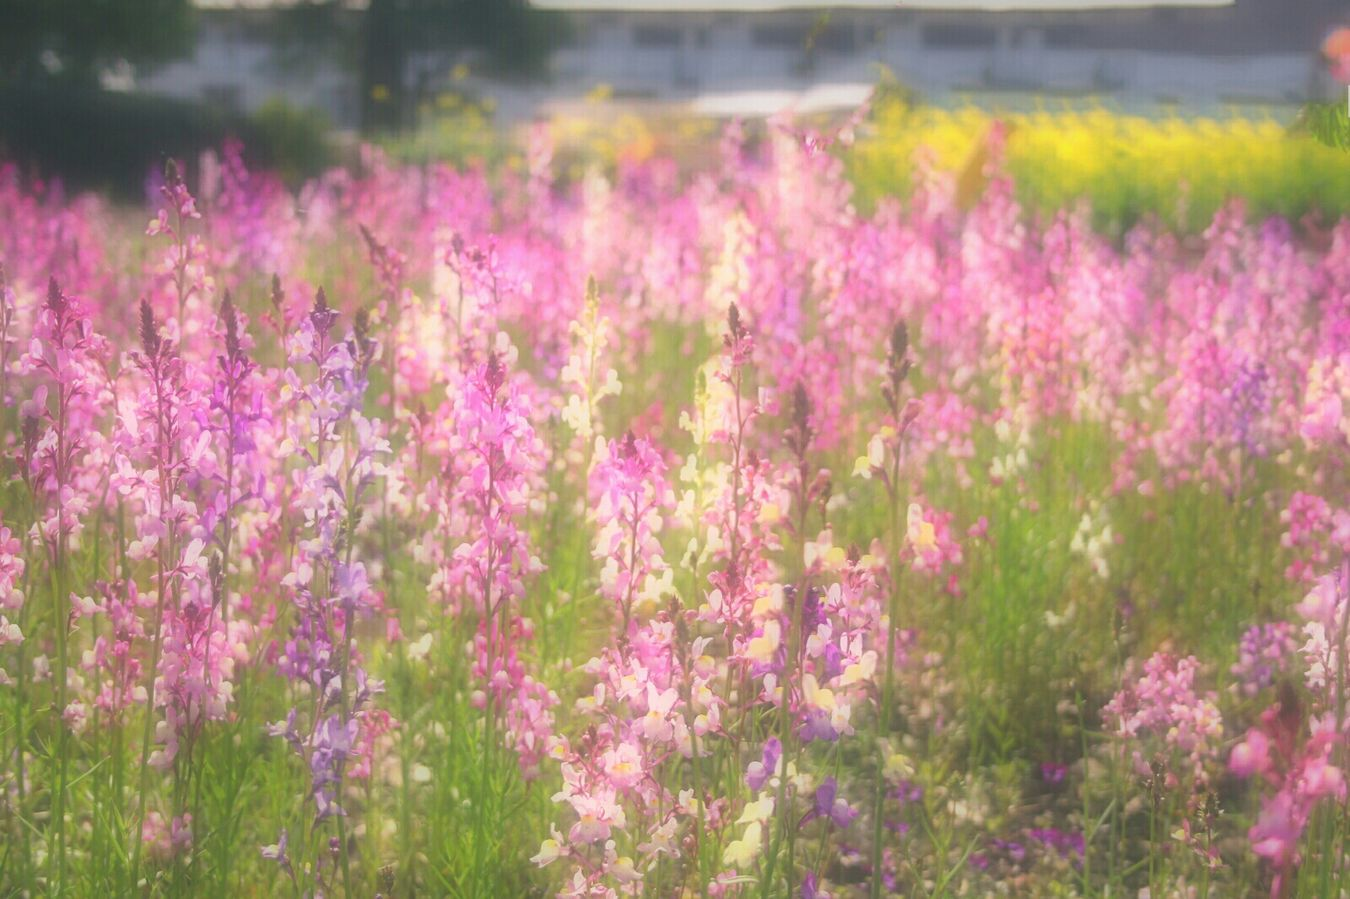 Showcase April Relaxing Spring Time 春 Spring Colors Spring Colours Bokeheffect Flowers EyeEm Nature Lover EyeEm Flower Bokeh Hazy Days Dreamfantasy Pink Airy Flowers Flower Collection お花畑